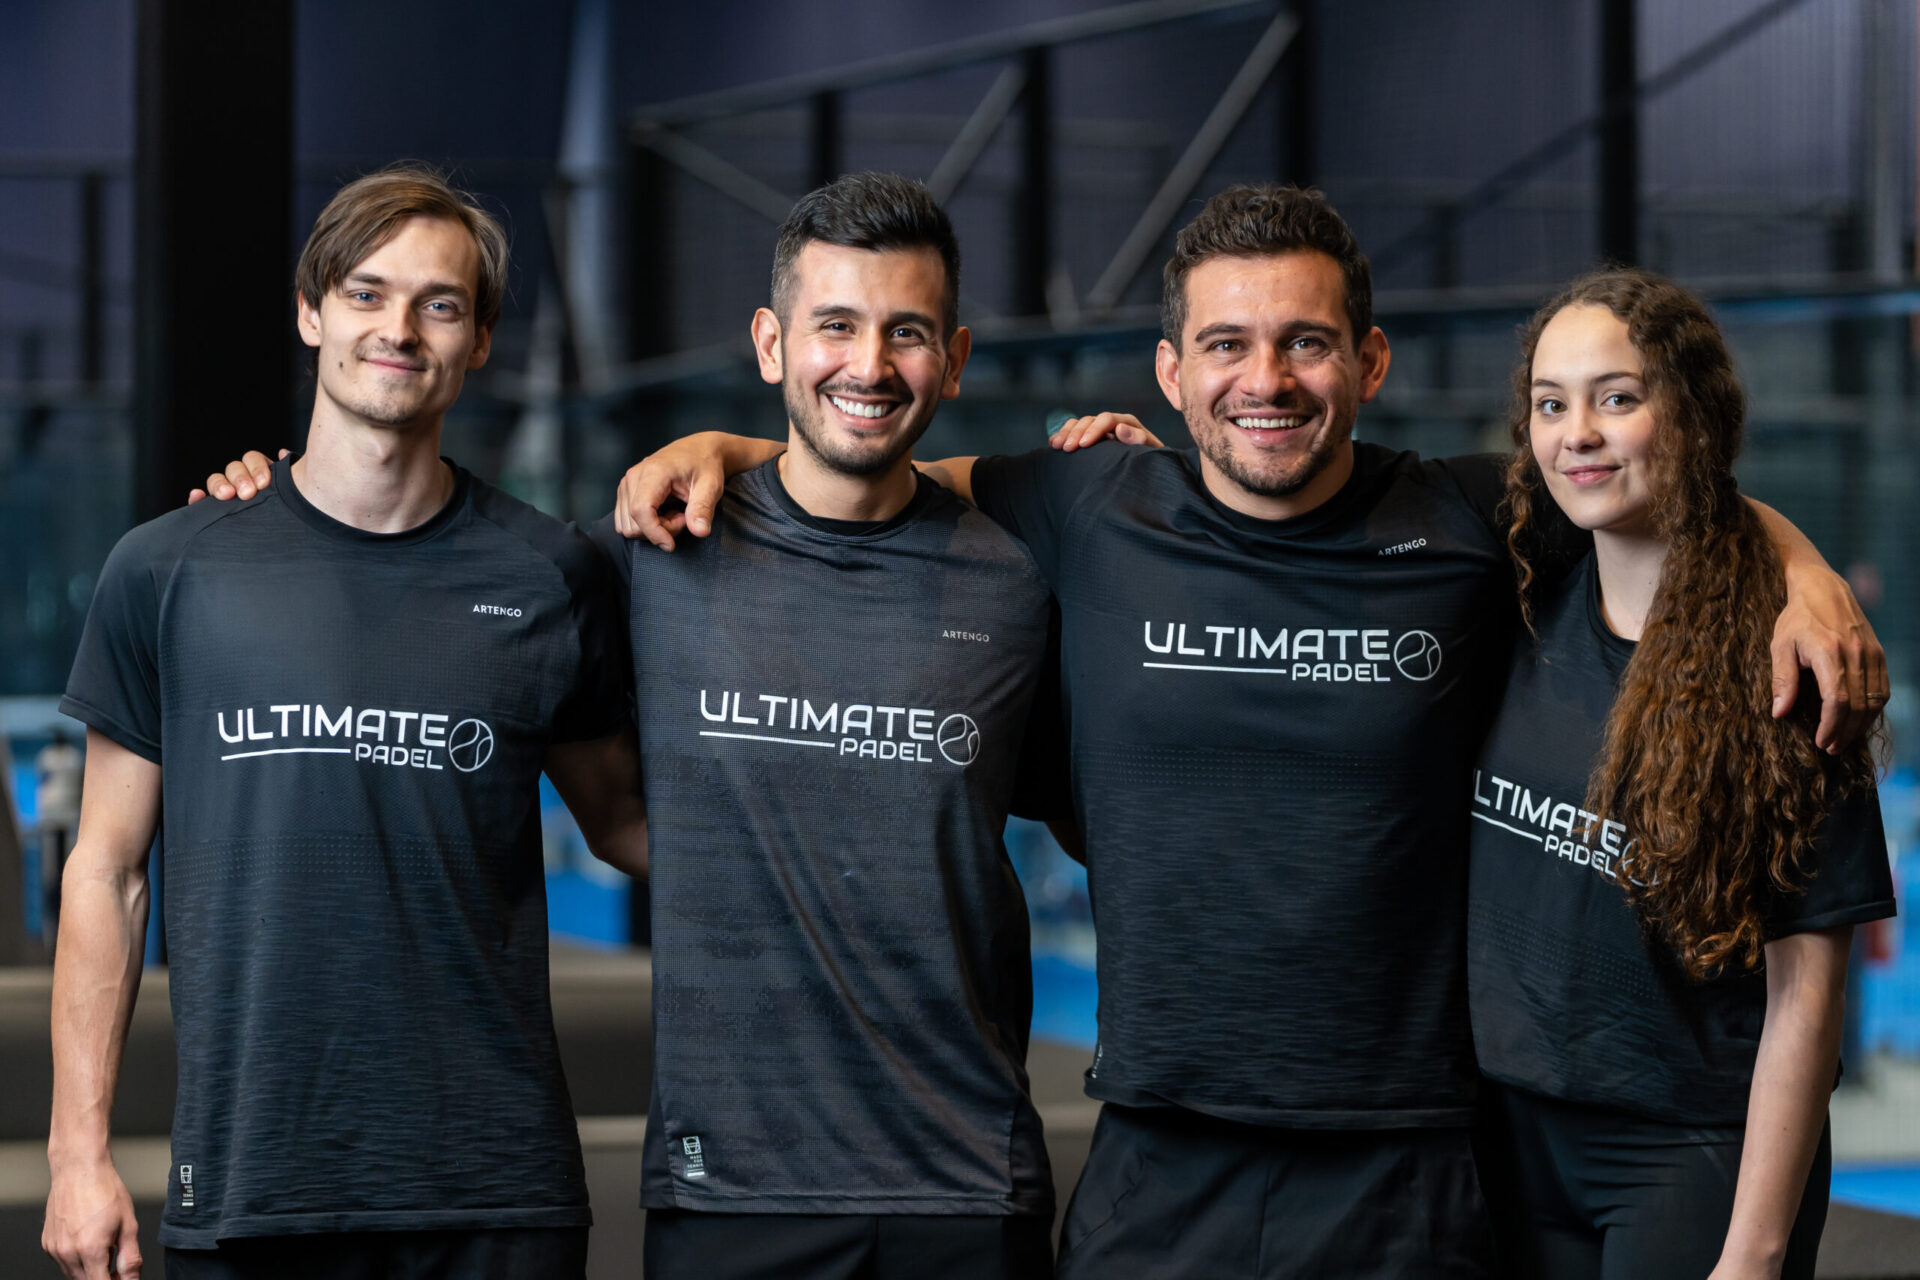 Ultimate-coaches